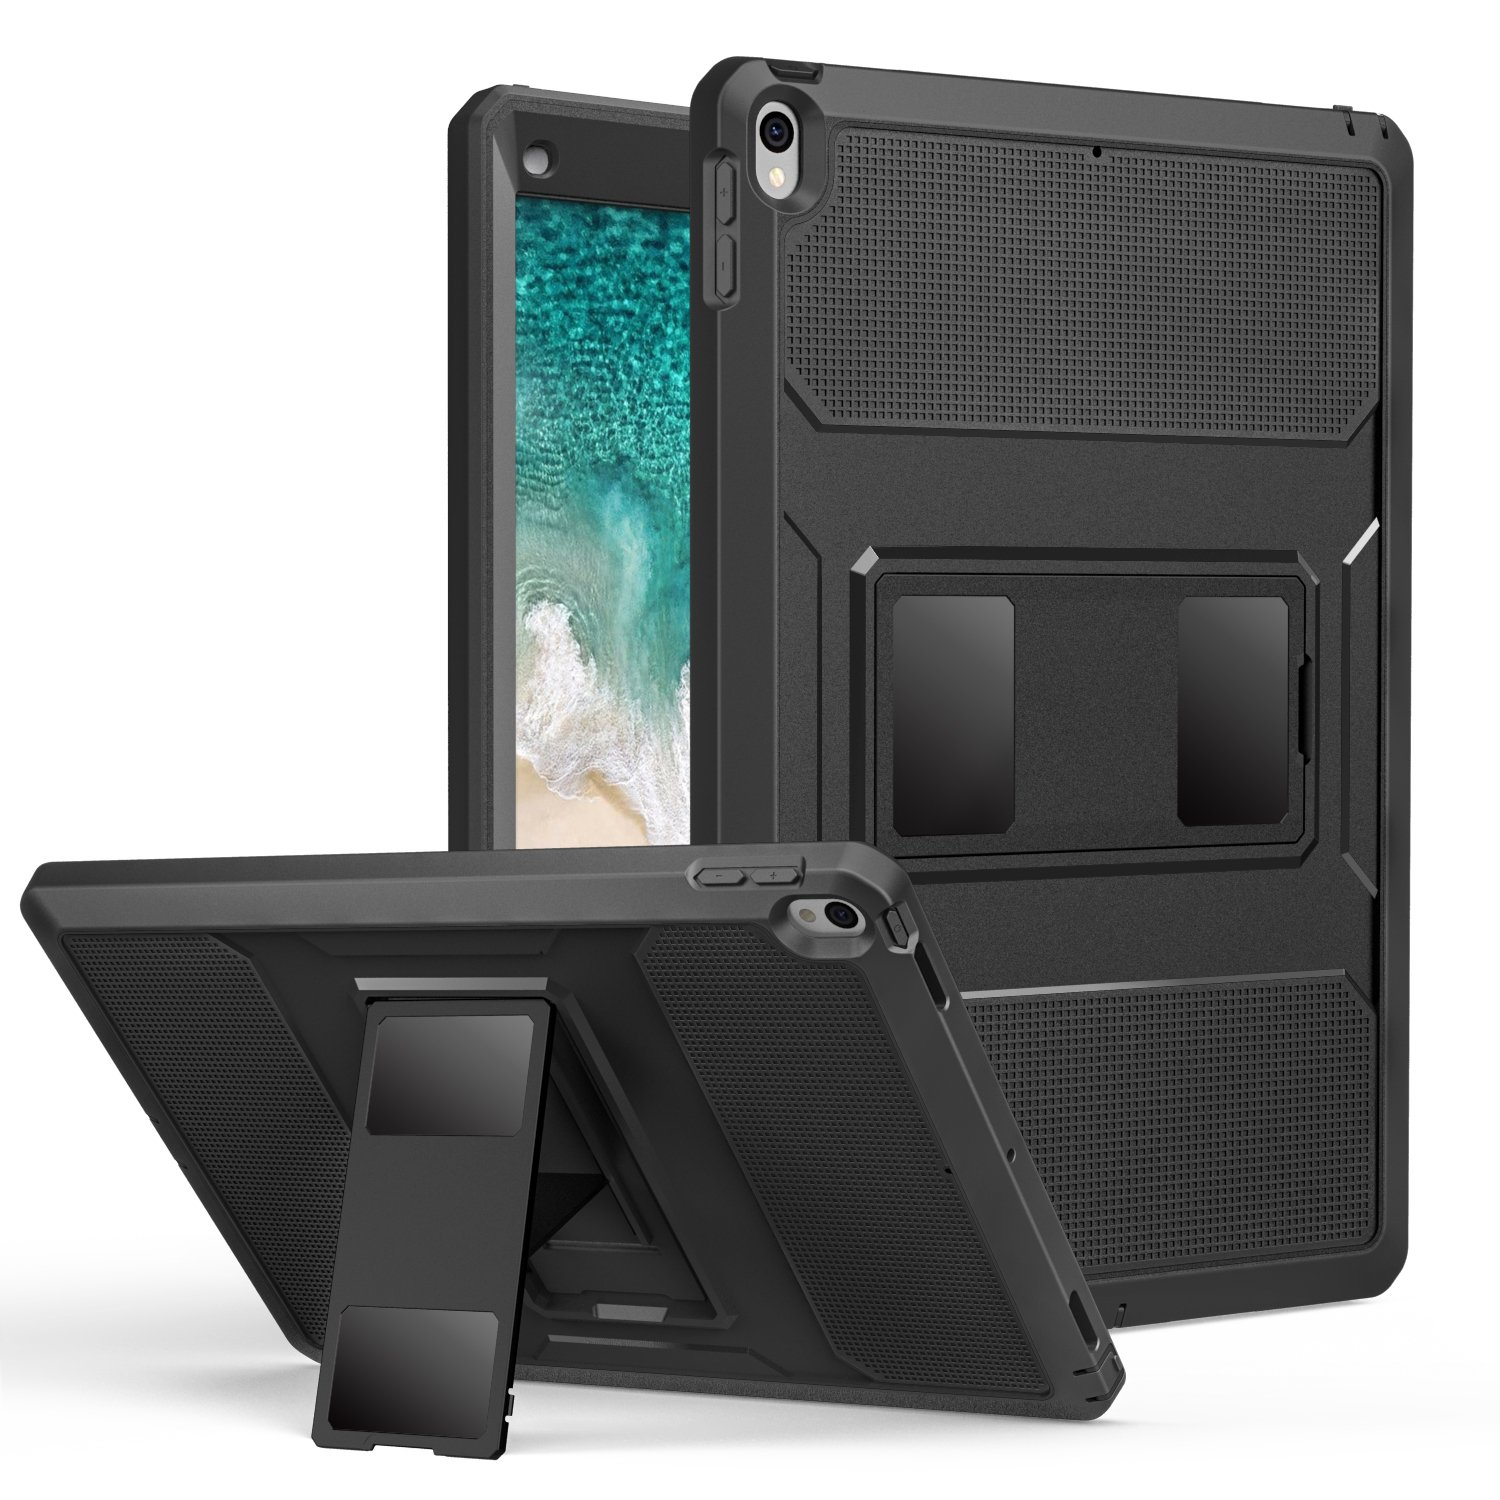 buy popular b8718 75339 MoKo Case for iPad Pro 12.9 2017 - [Heavy Duty] Shockproof Full Body Rugged  Hybrid Cover with Built-in Screen Protector for Apple New iPad Pro 12.9 ...